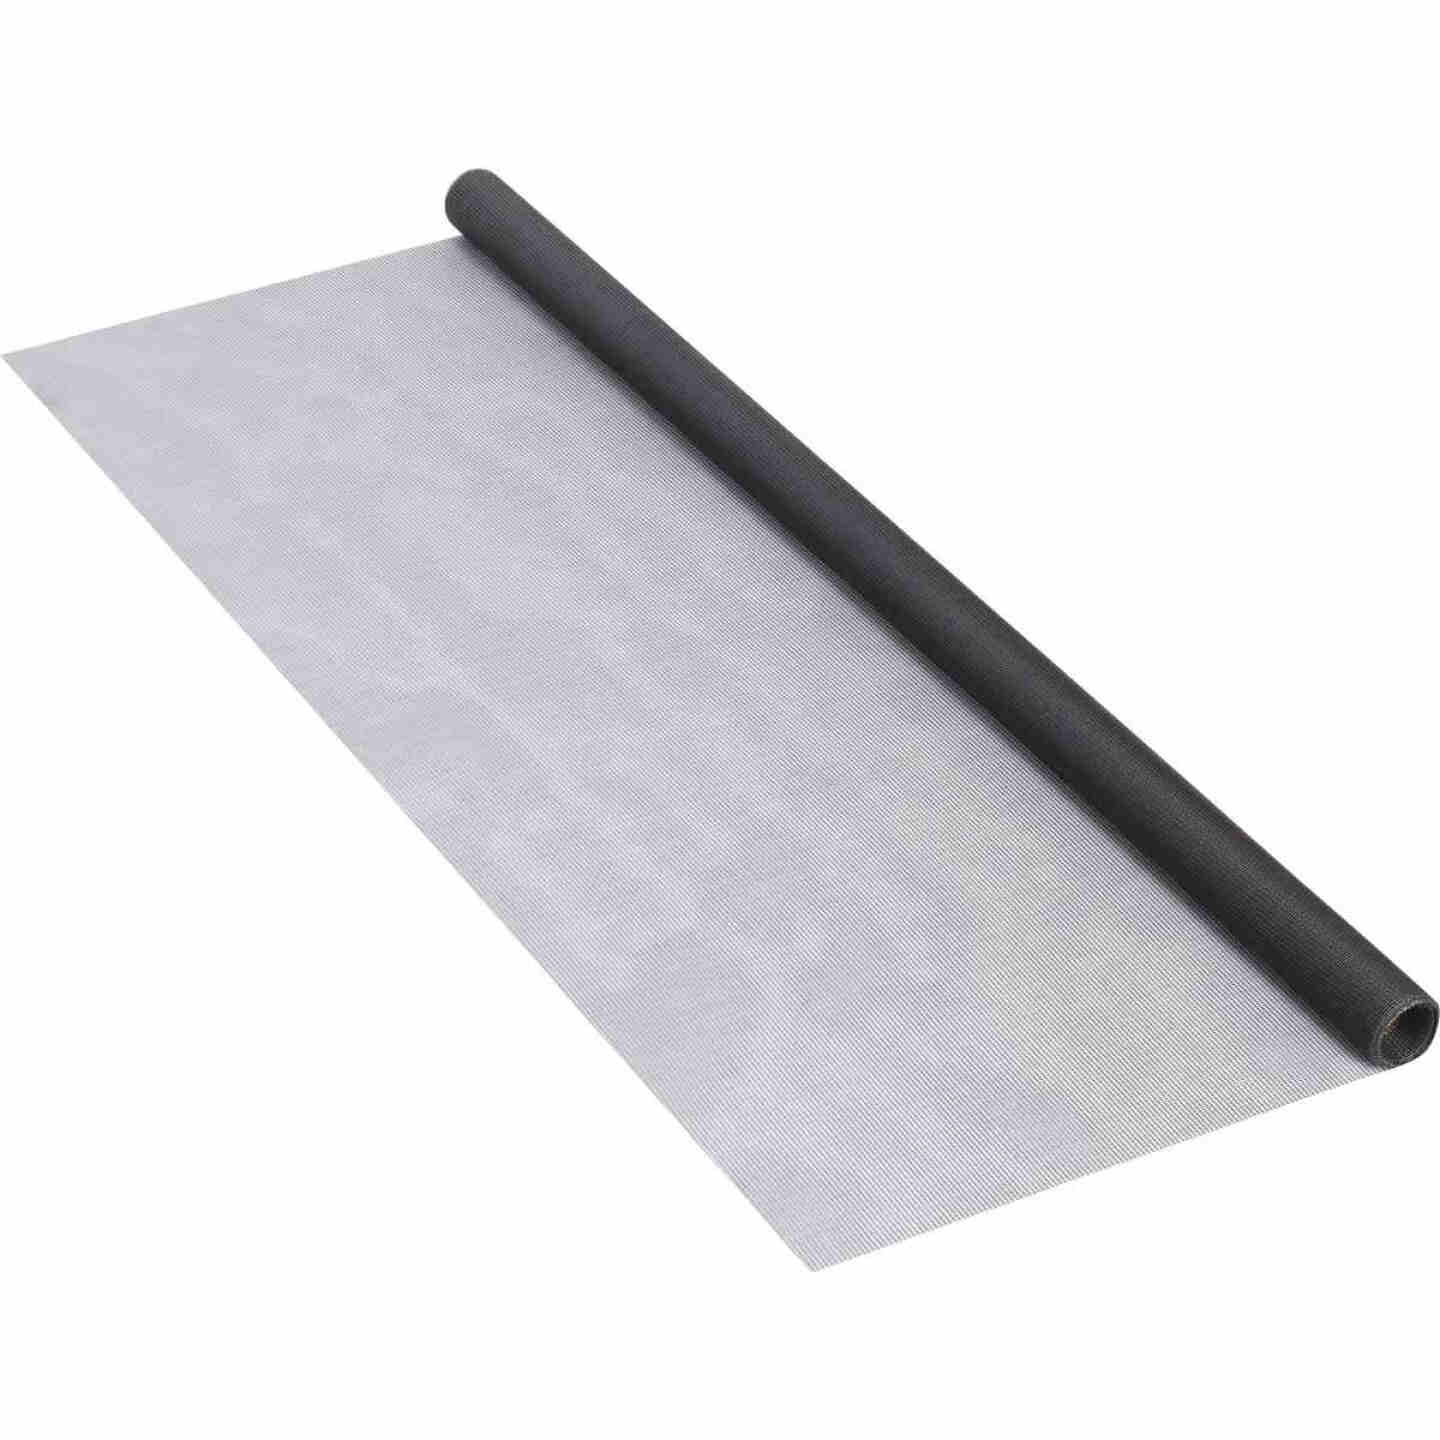 Phifer 36 In. x 84 In. Charcoal Fiberglass Screen Cloth Ready Rolls Image 3